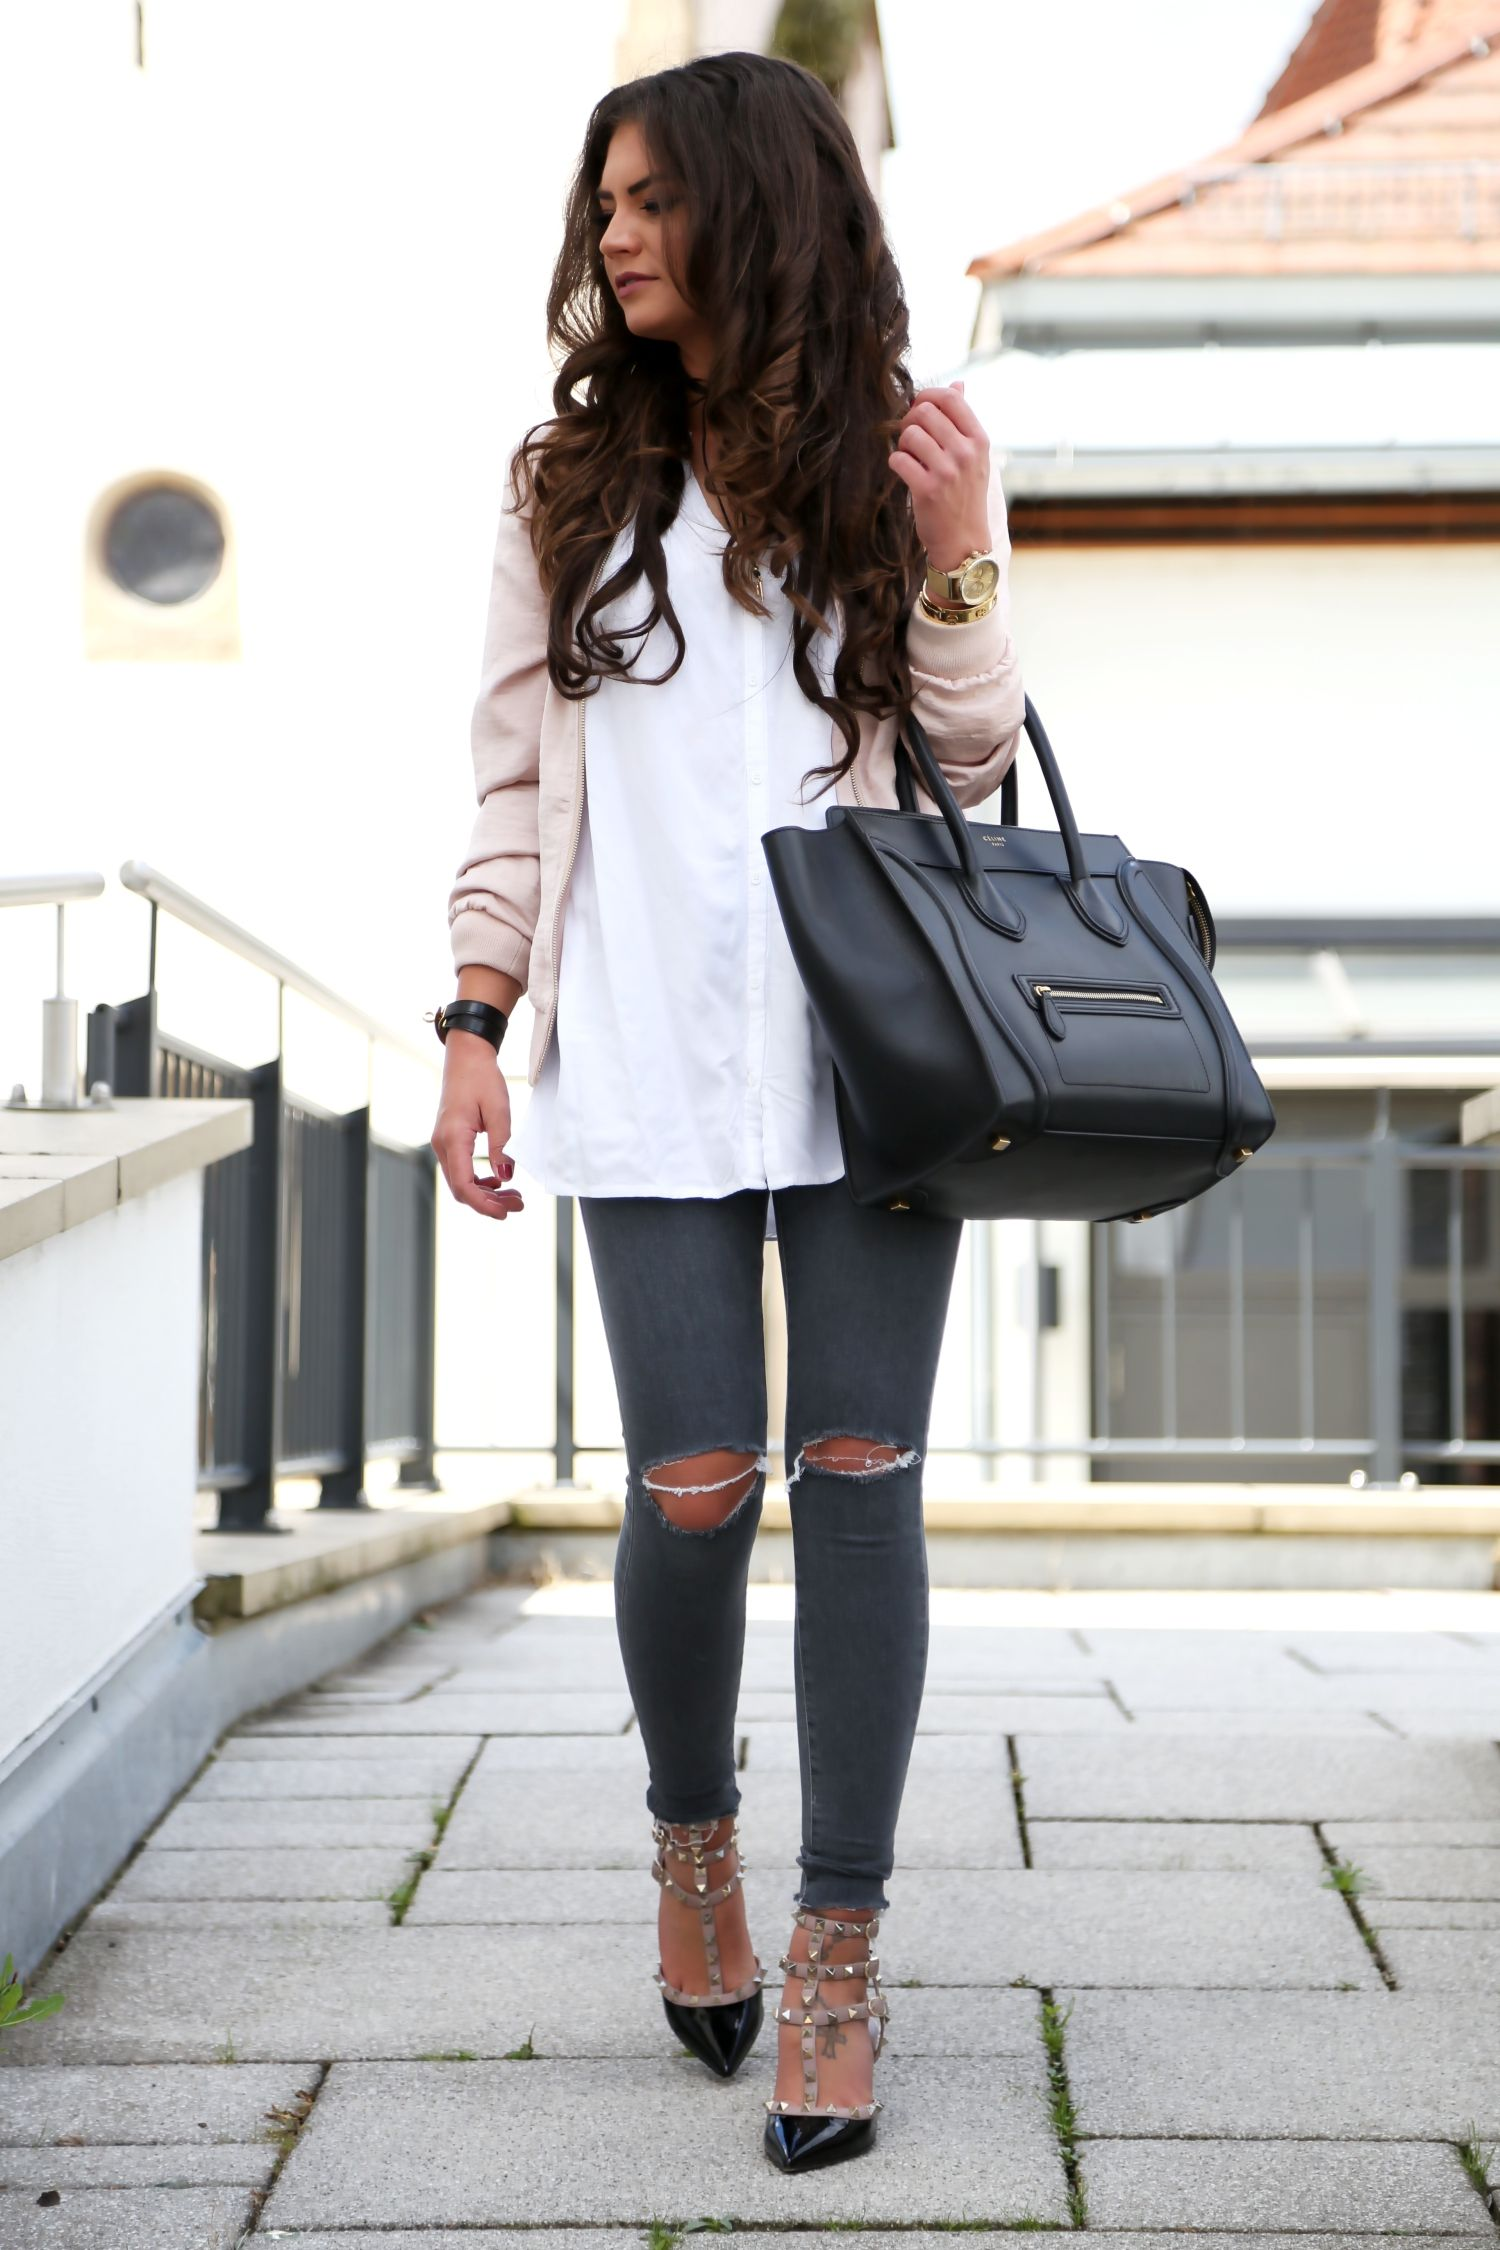 ab8973d0824 outfit-topshop-ripped-jeans-valentino-rockstud-heels-celine-luggage-bag